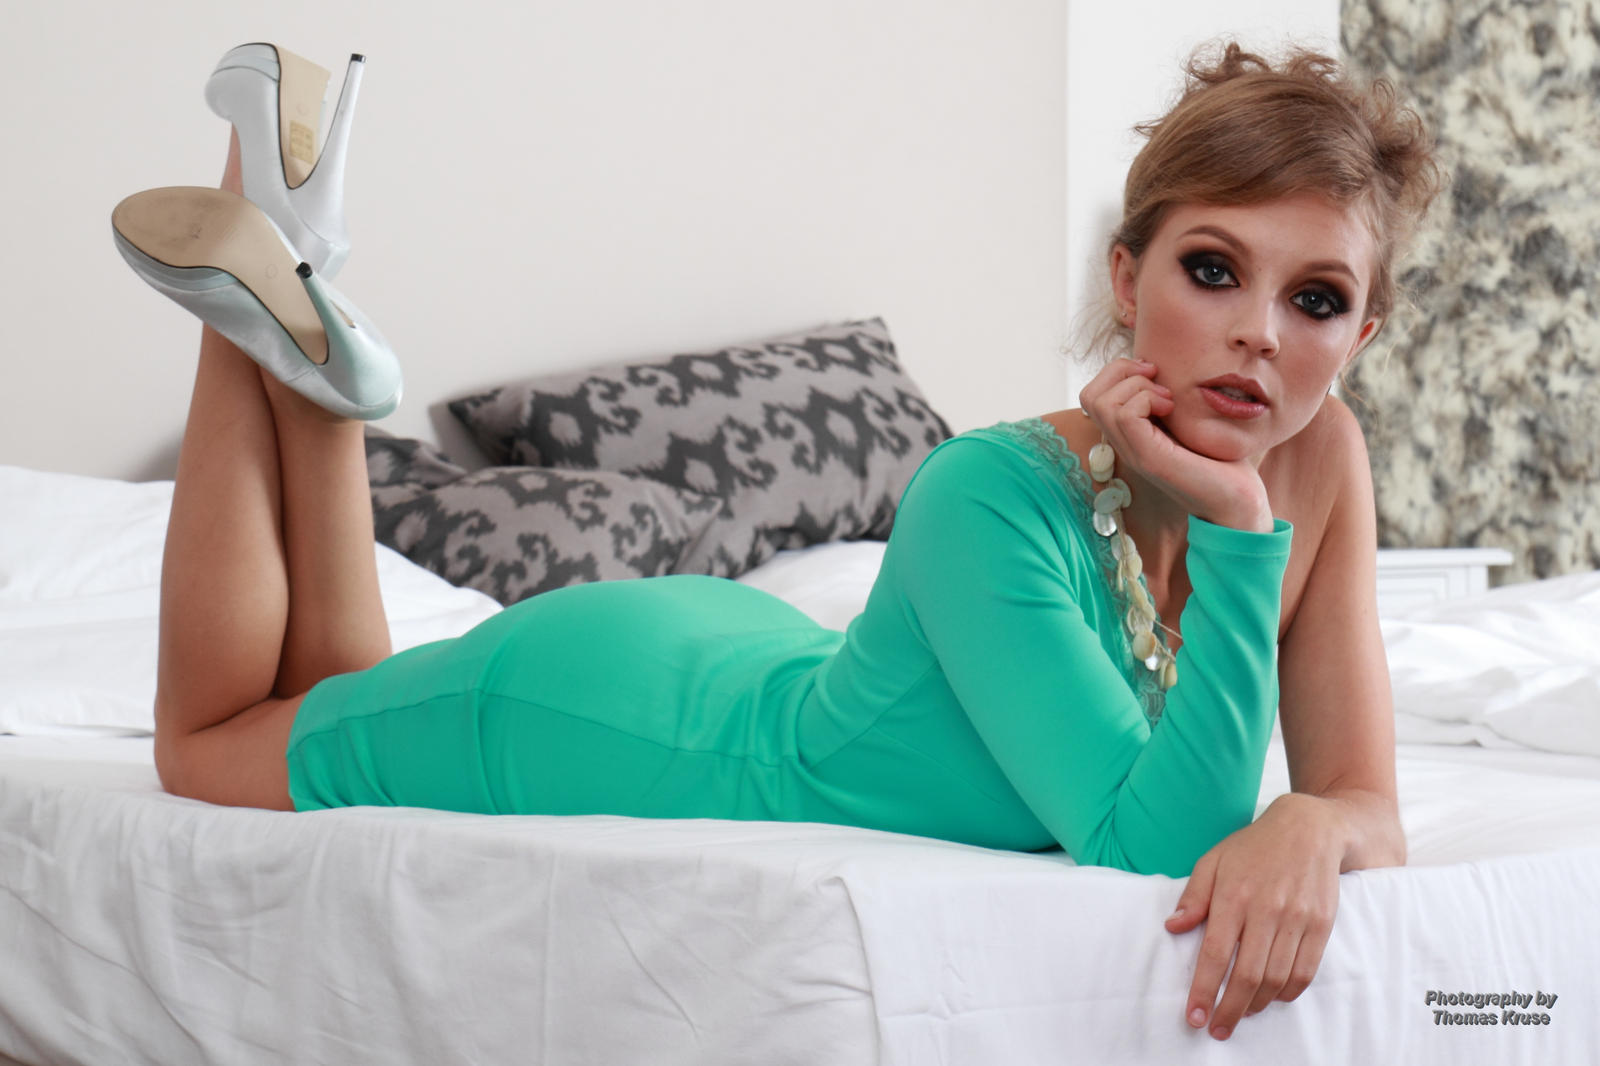 Anna in the green dress 14 by PhotographyThomasKru